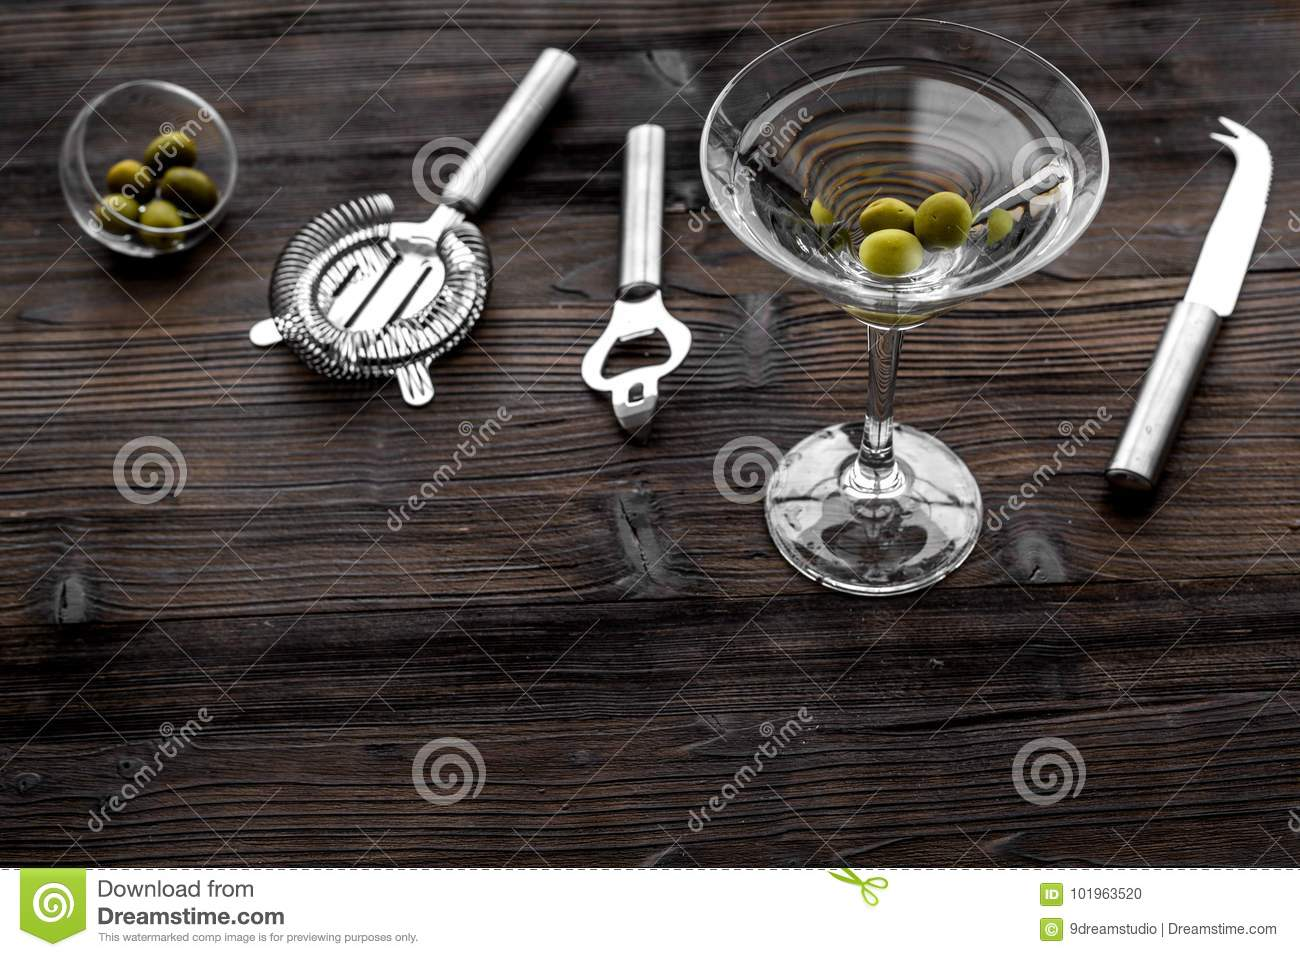 Make Martini Cocktails  Glass With Beverage, Olives And